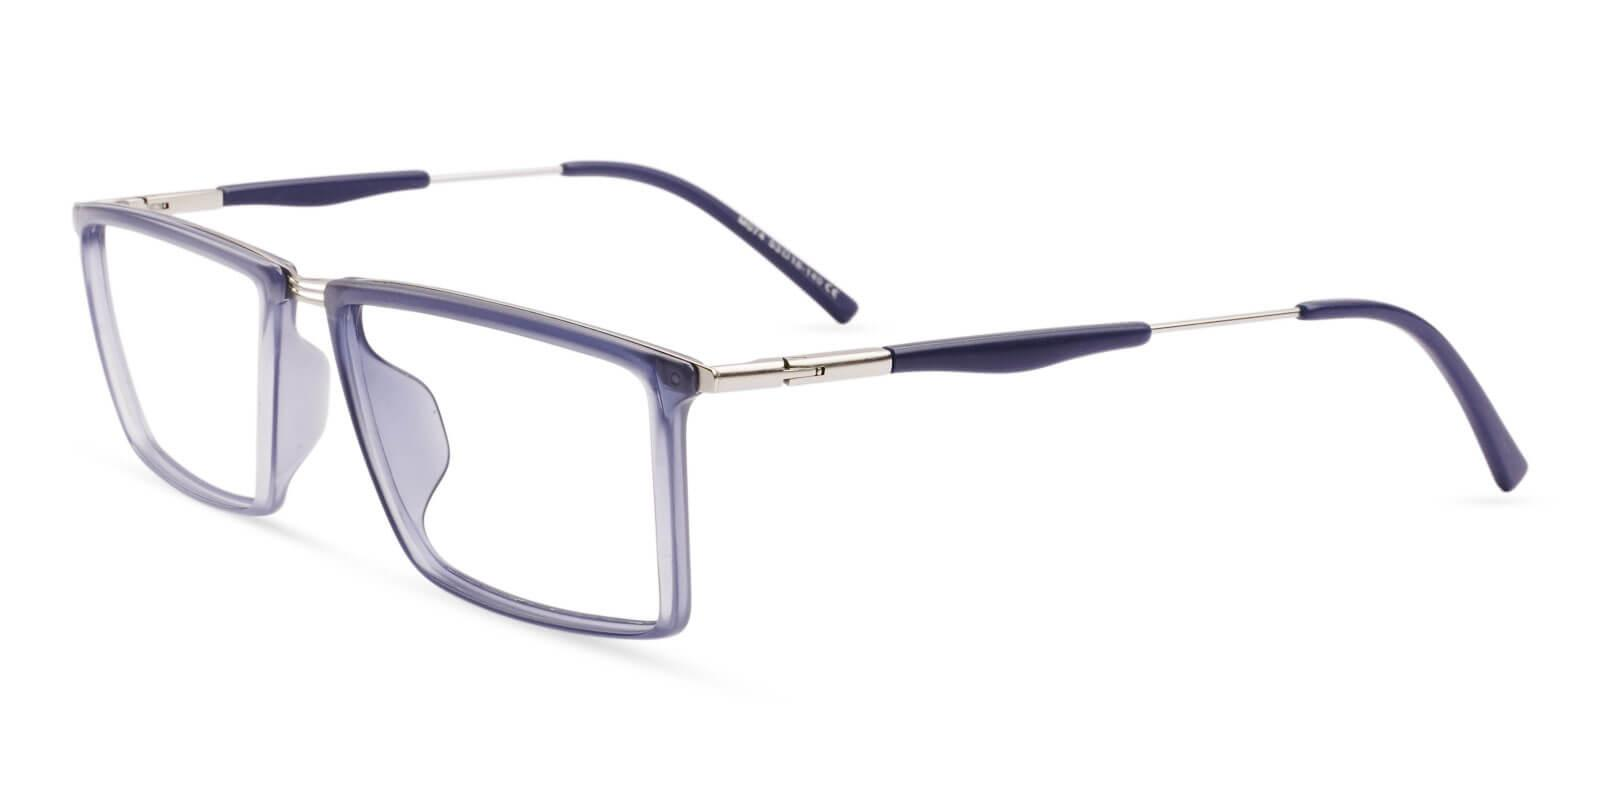 Rhode Blue TR Eyeglasses , UniversalBridgeFit Frames from ABBE Glasses